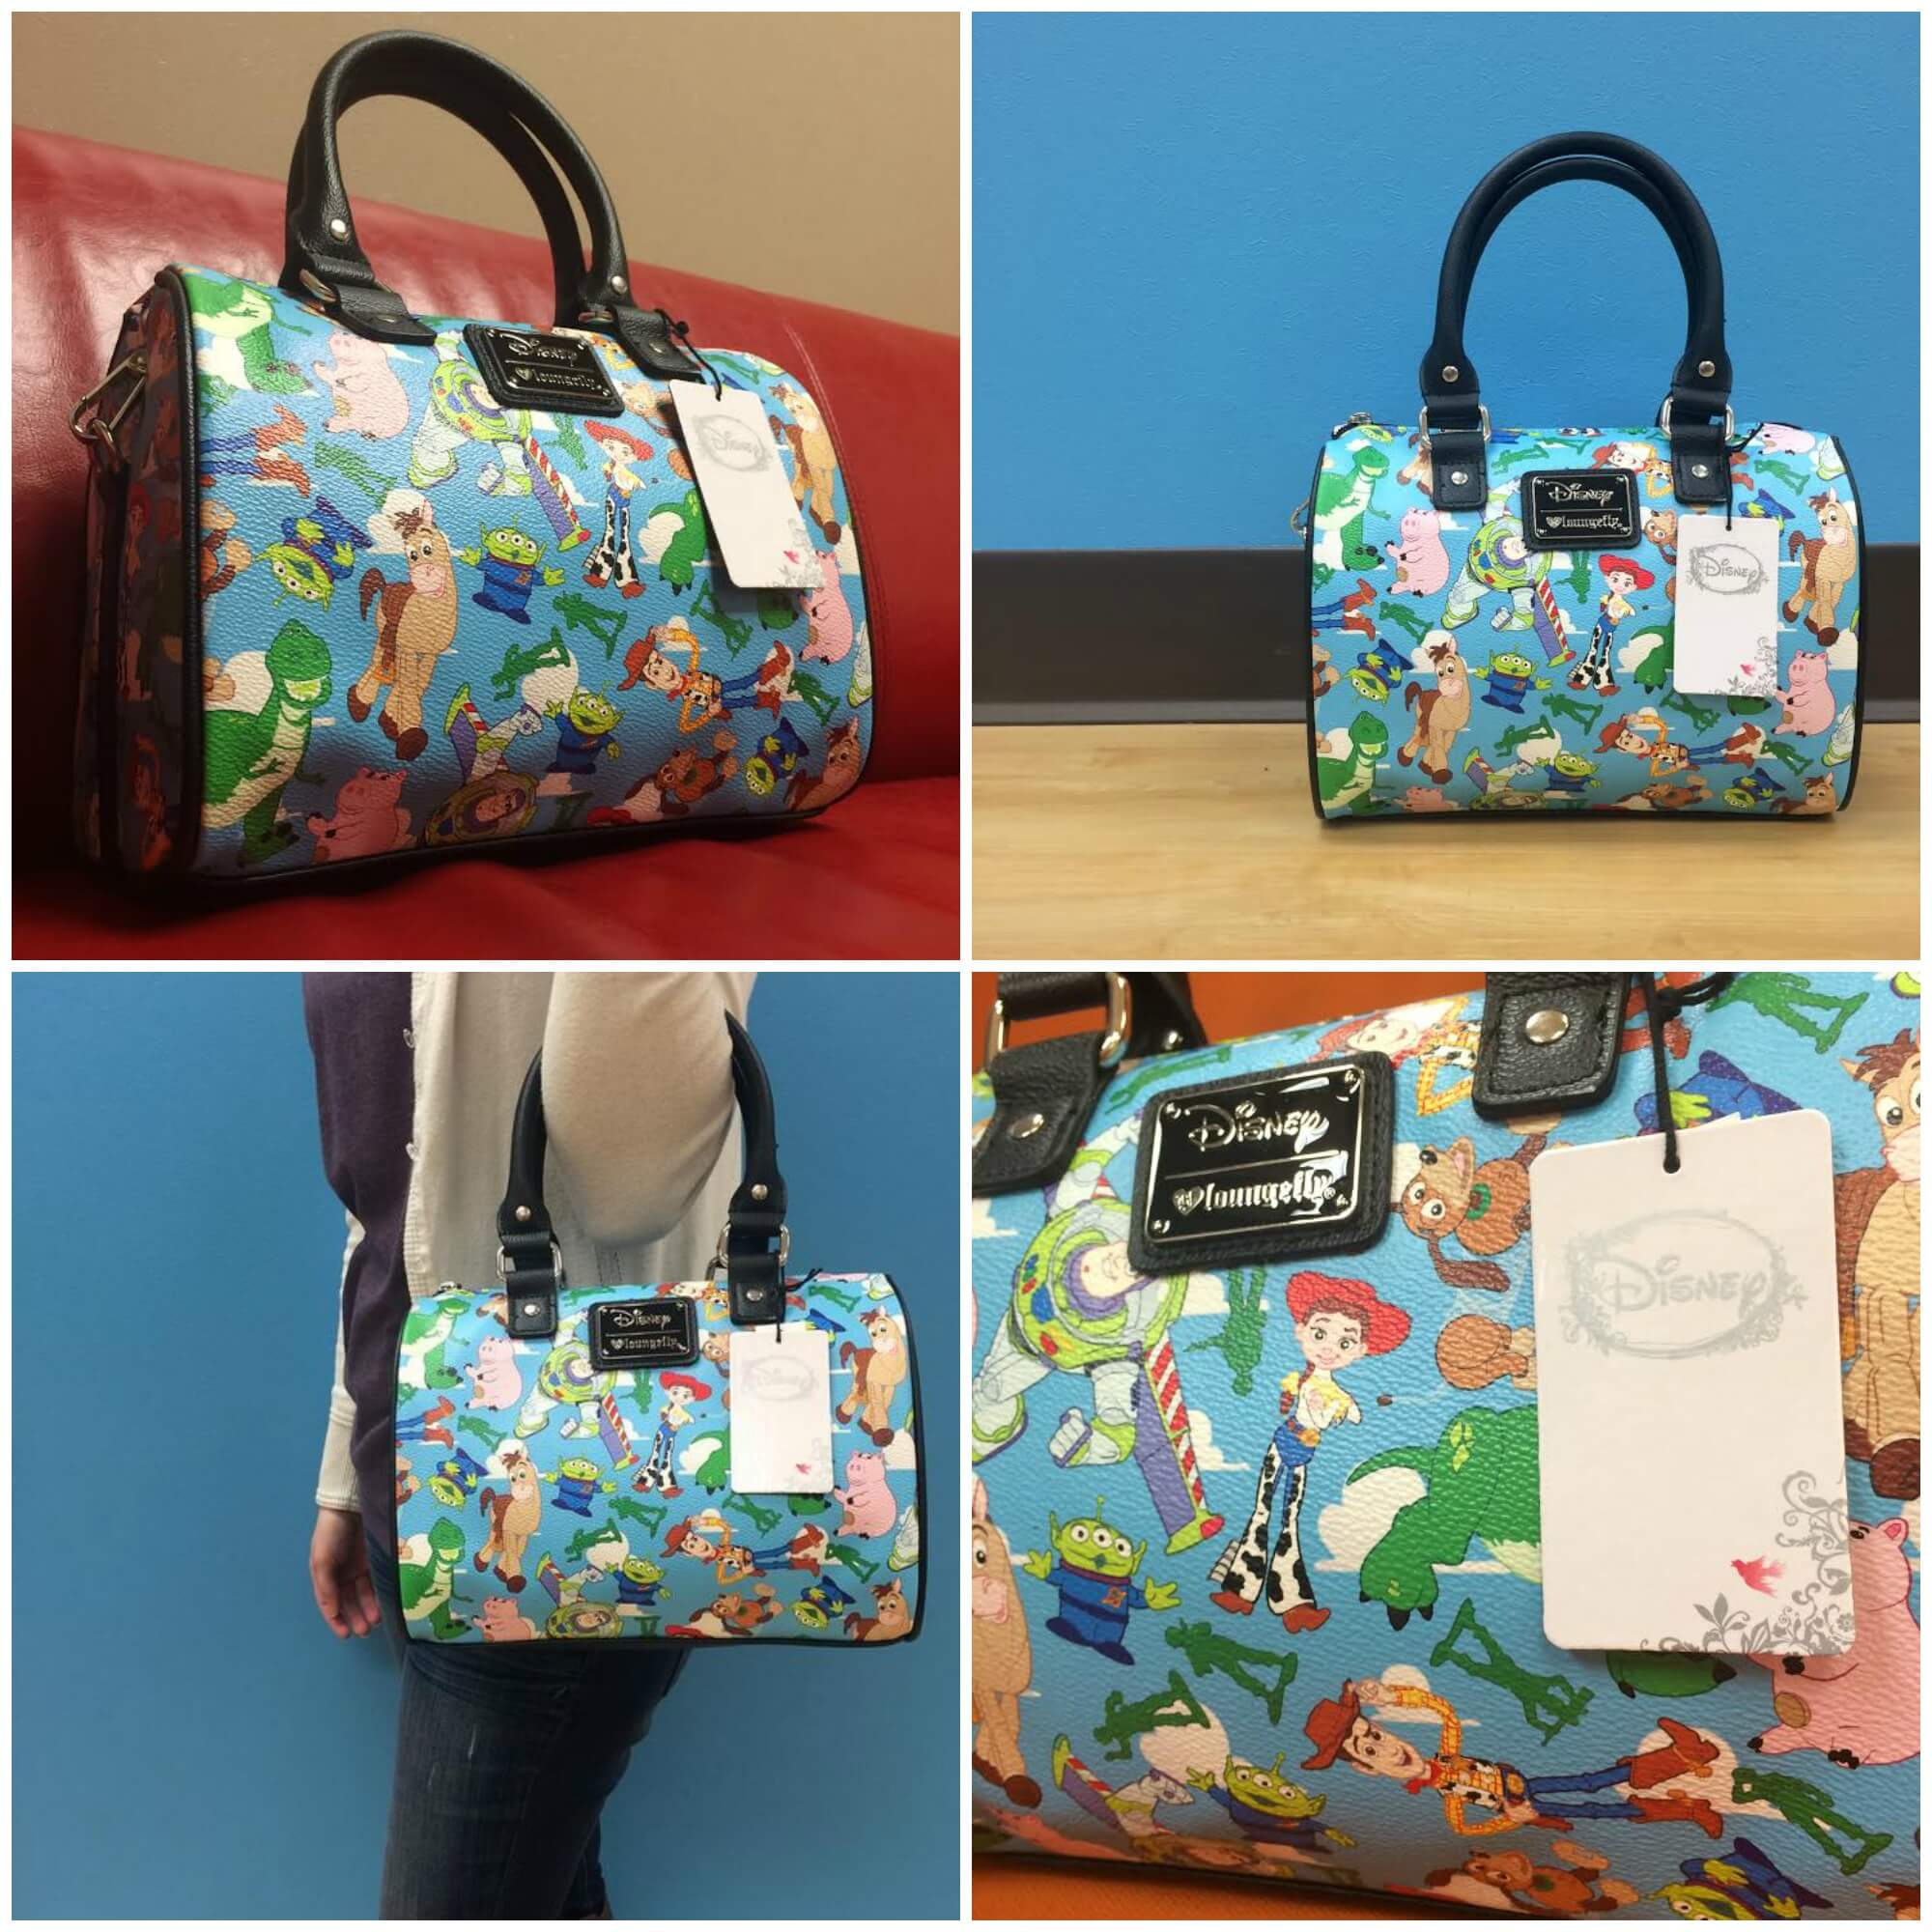 Toy Story Loungefly Bag